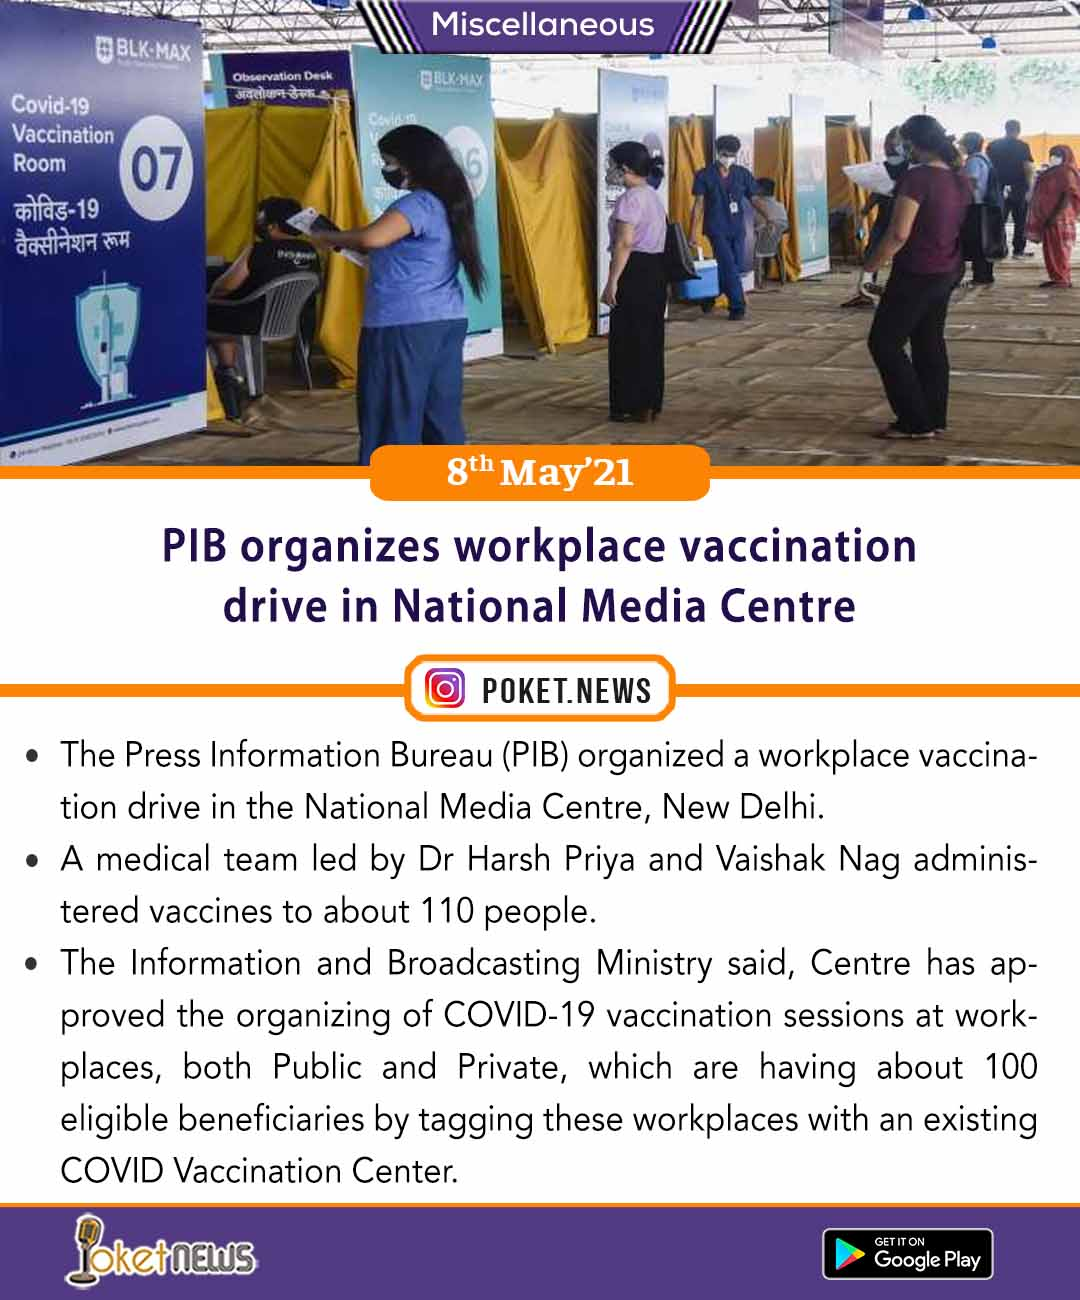 PIB organizes workplace vaccination drive in National Media Centre